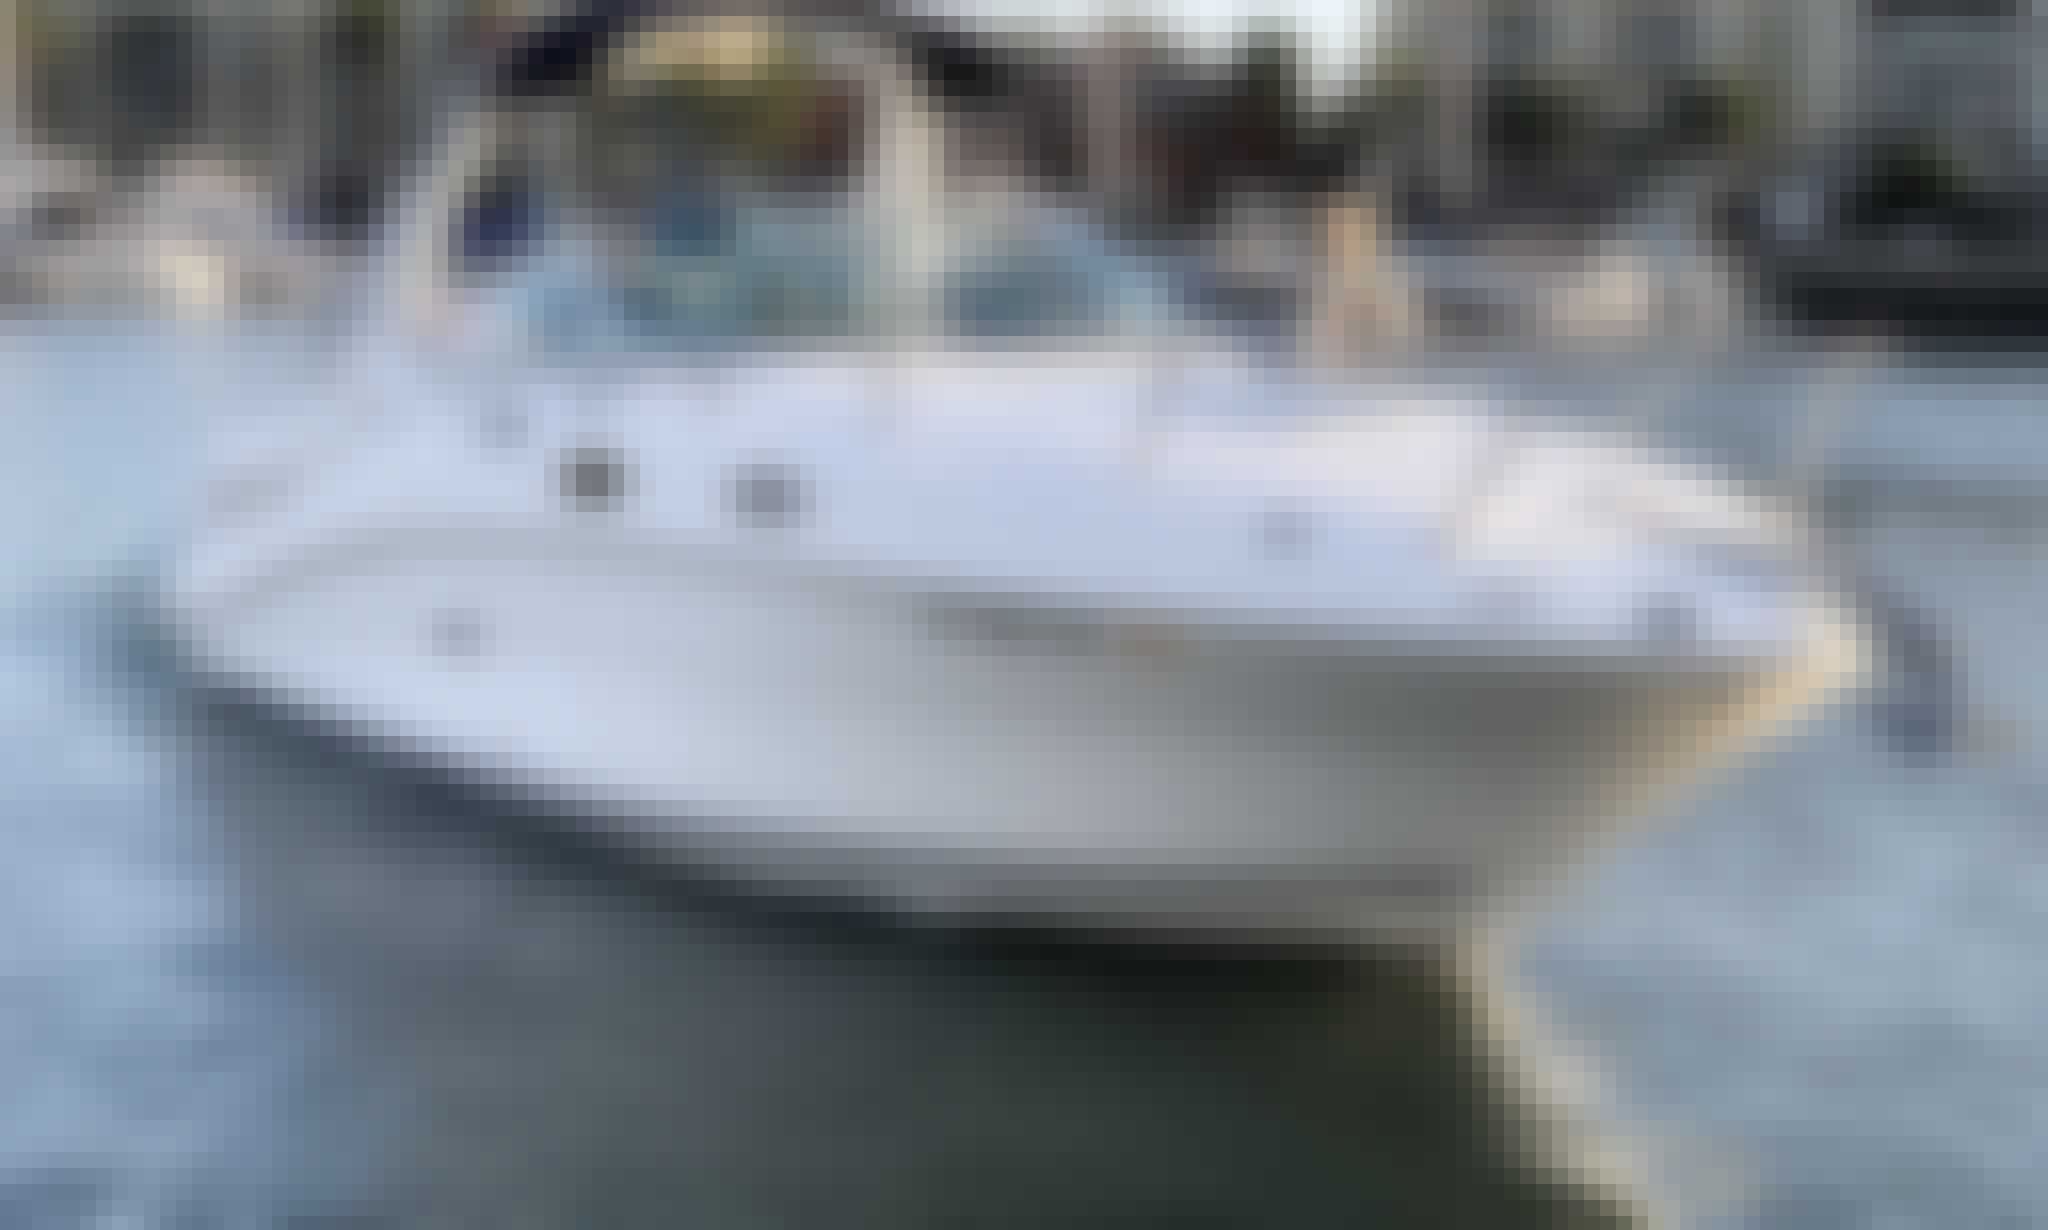 Sea Ray Sundancer 26 Luxury Motor Yacht In Marina Del Rey Is Waiting For You